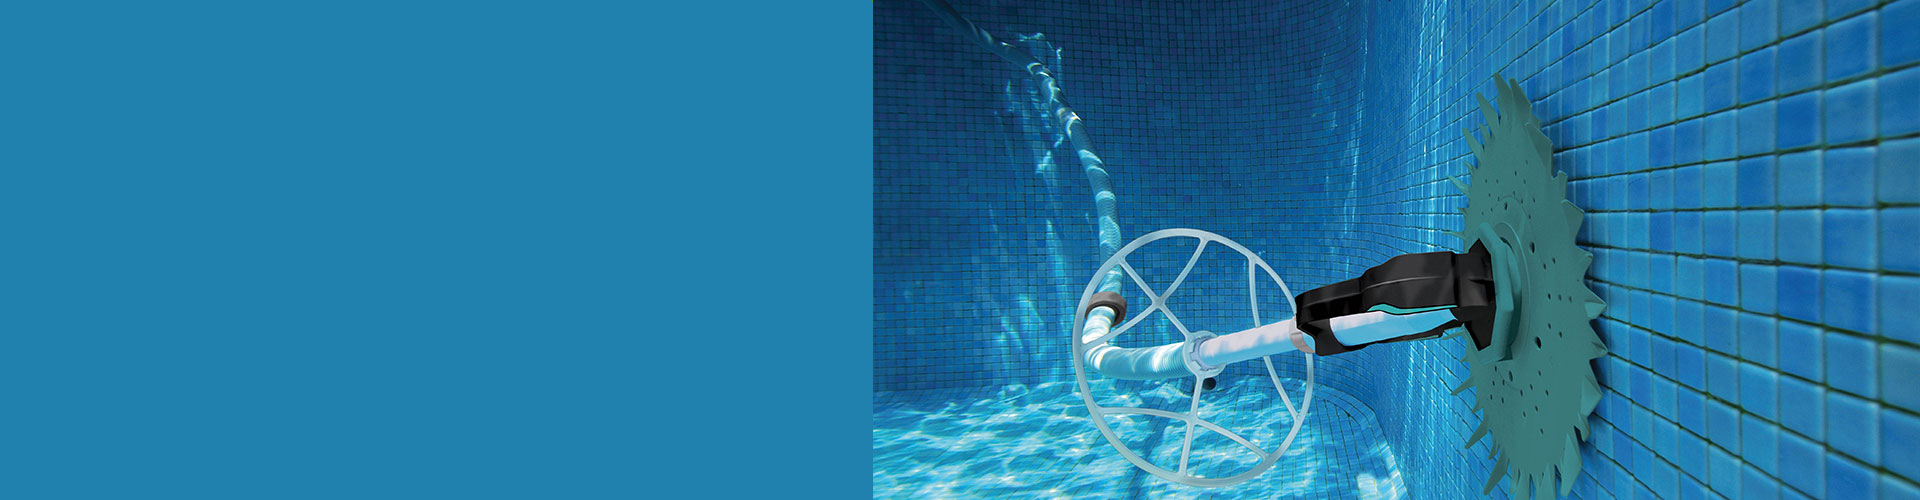 Swimming Pool Supply, Pumps, Skimmer, Automatic Pool Cleaner and Parts